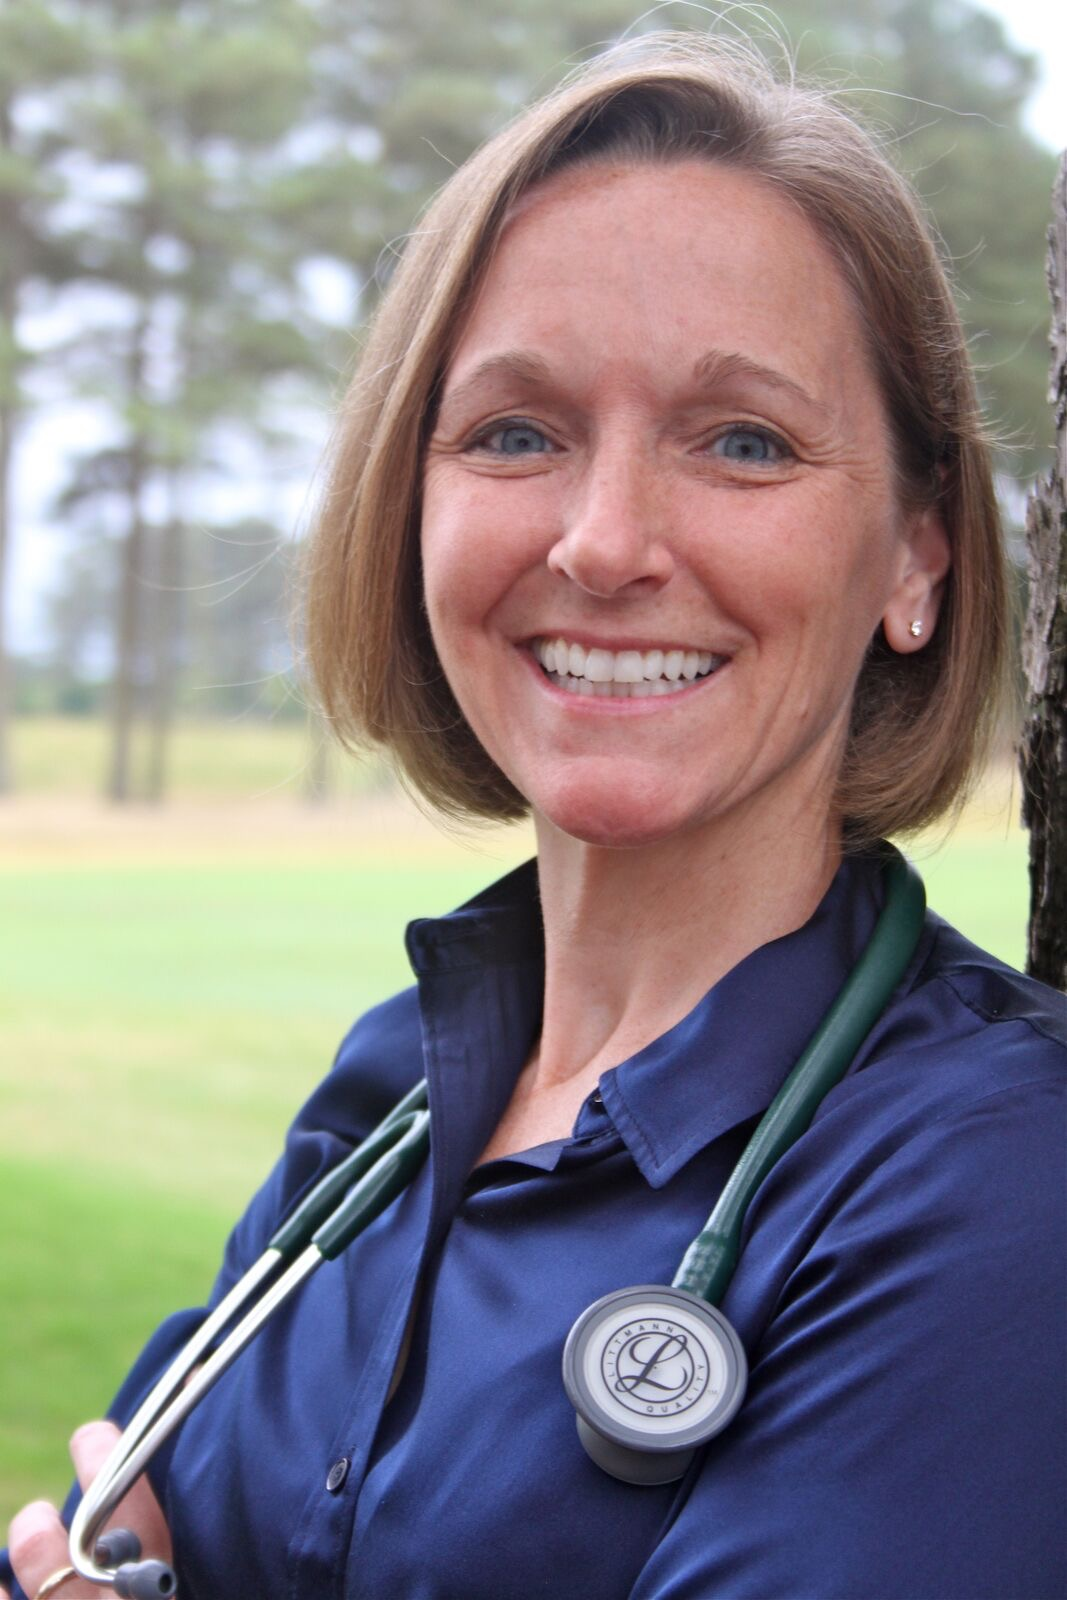 Dr. Amy Walsh, MD